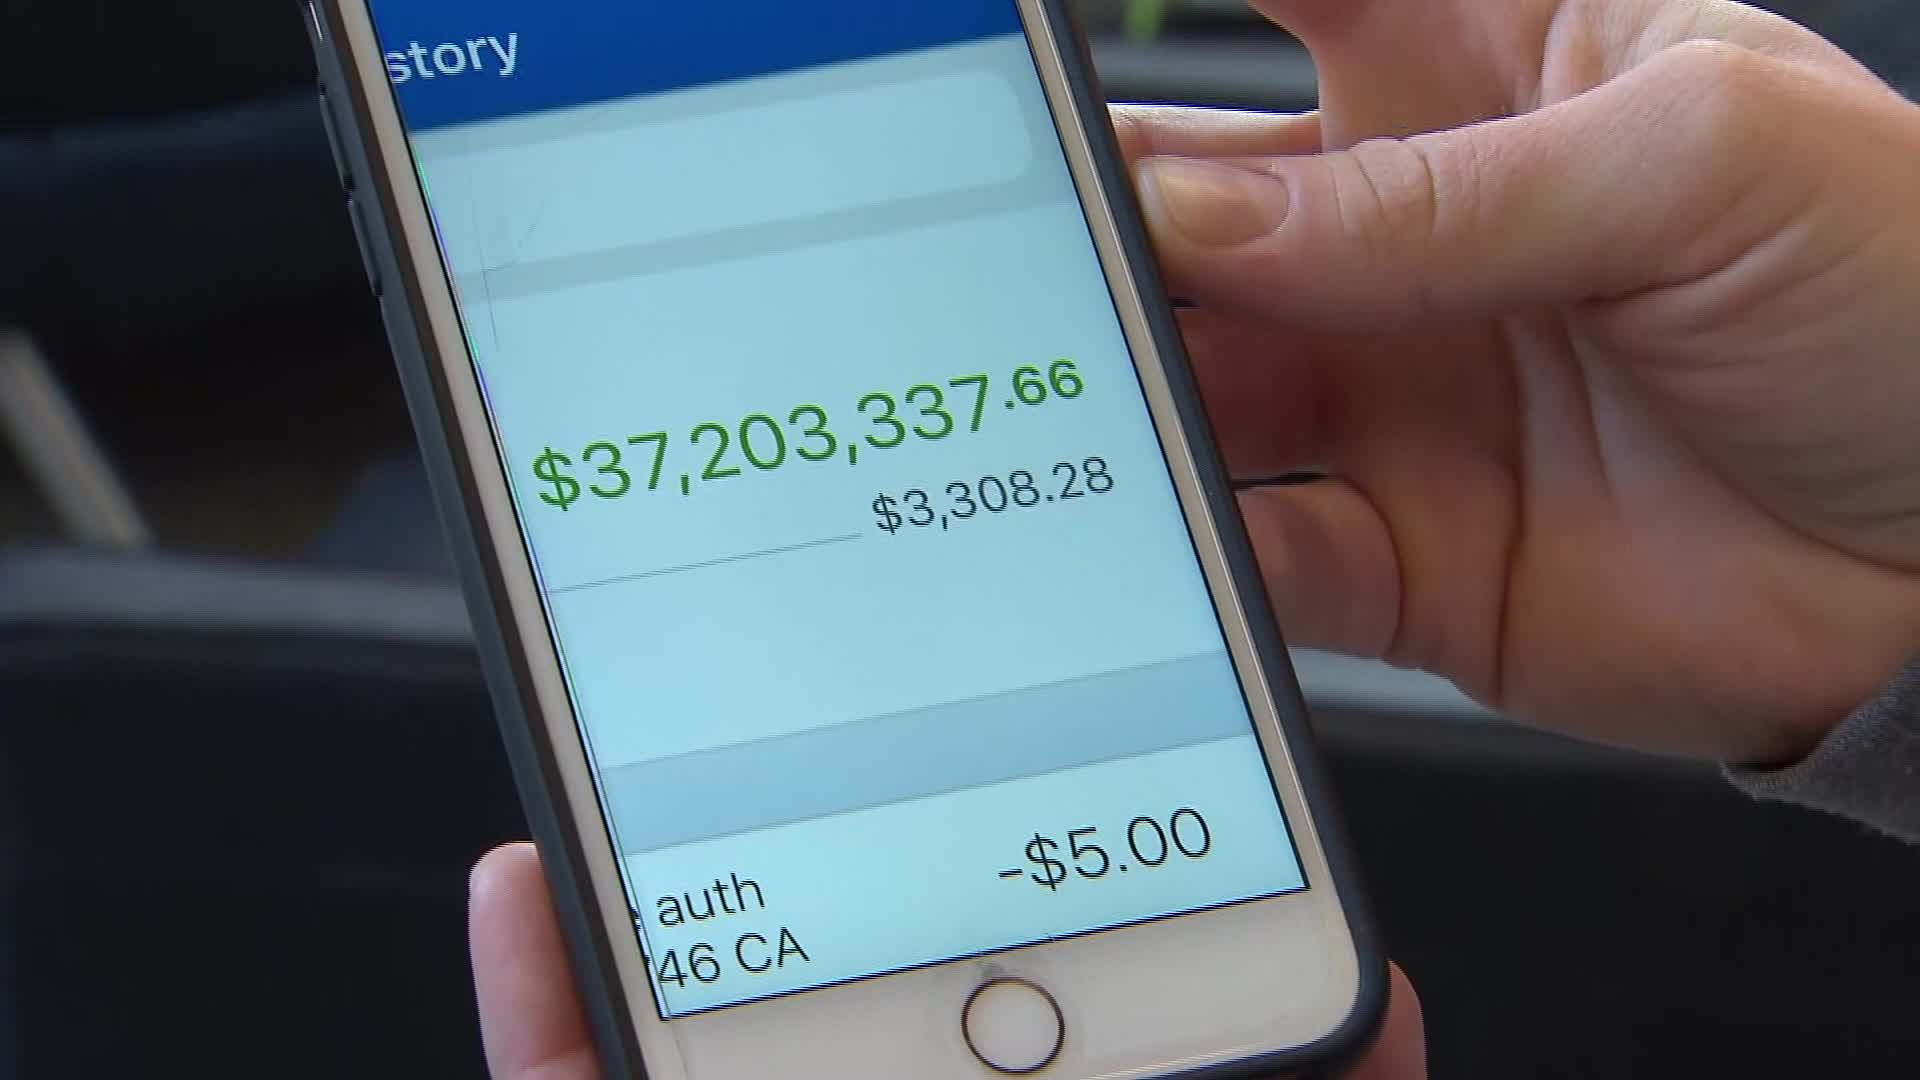 Bank mistakenly puts $37M in woman's account